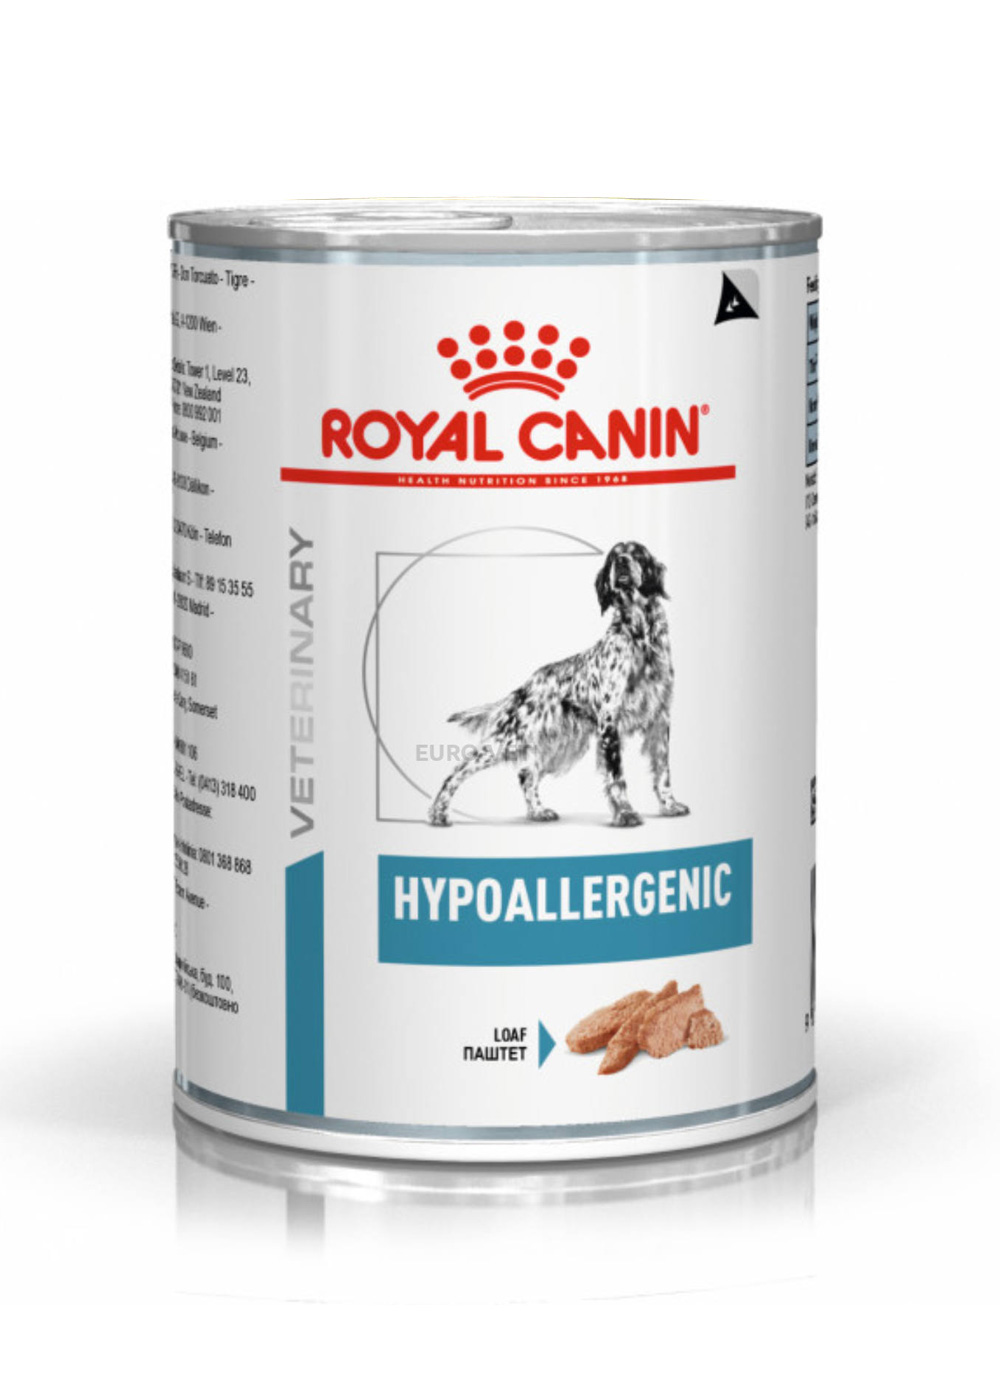 Royal Canin Veterinary Diets Dog Derma Hypoallergenic Loaf